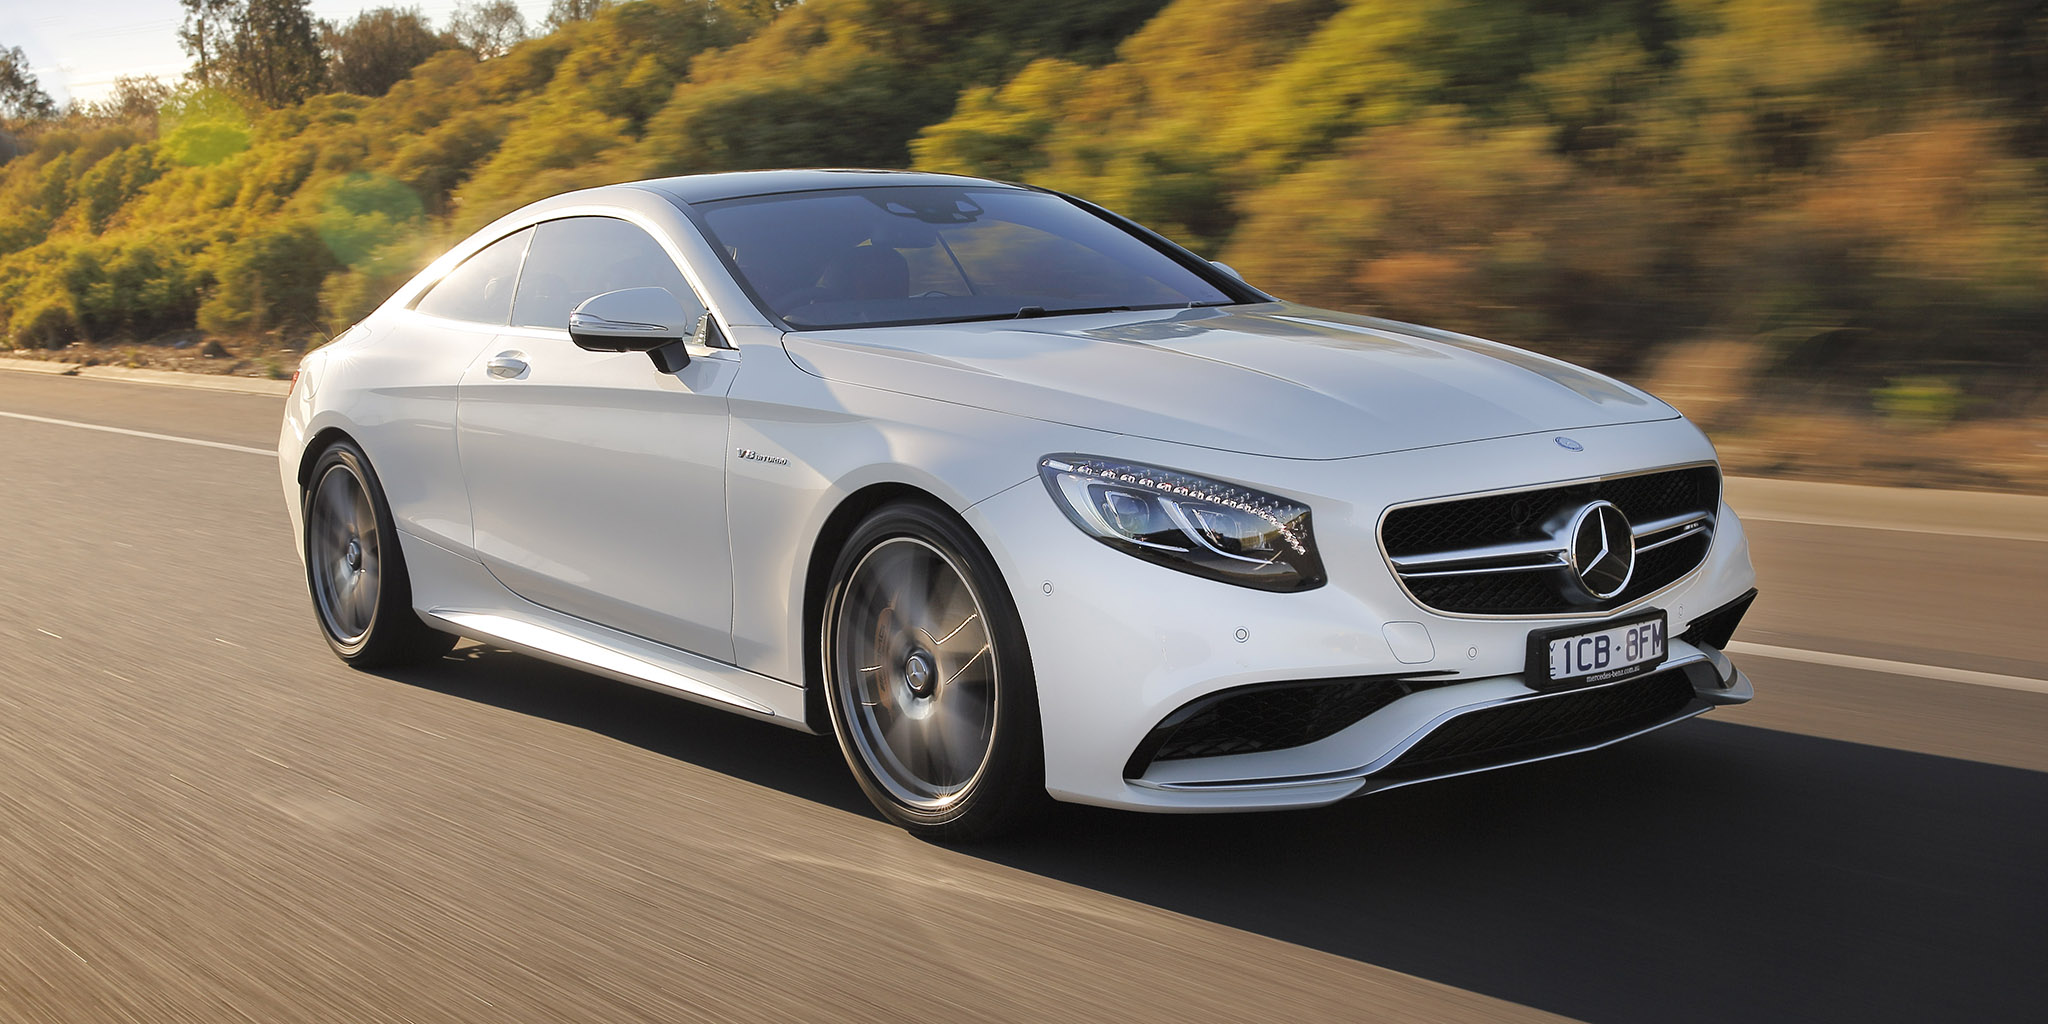 Awesome 2015 MercedesBenz S63 AMG Coupe Review  CarAdvice